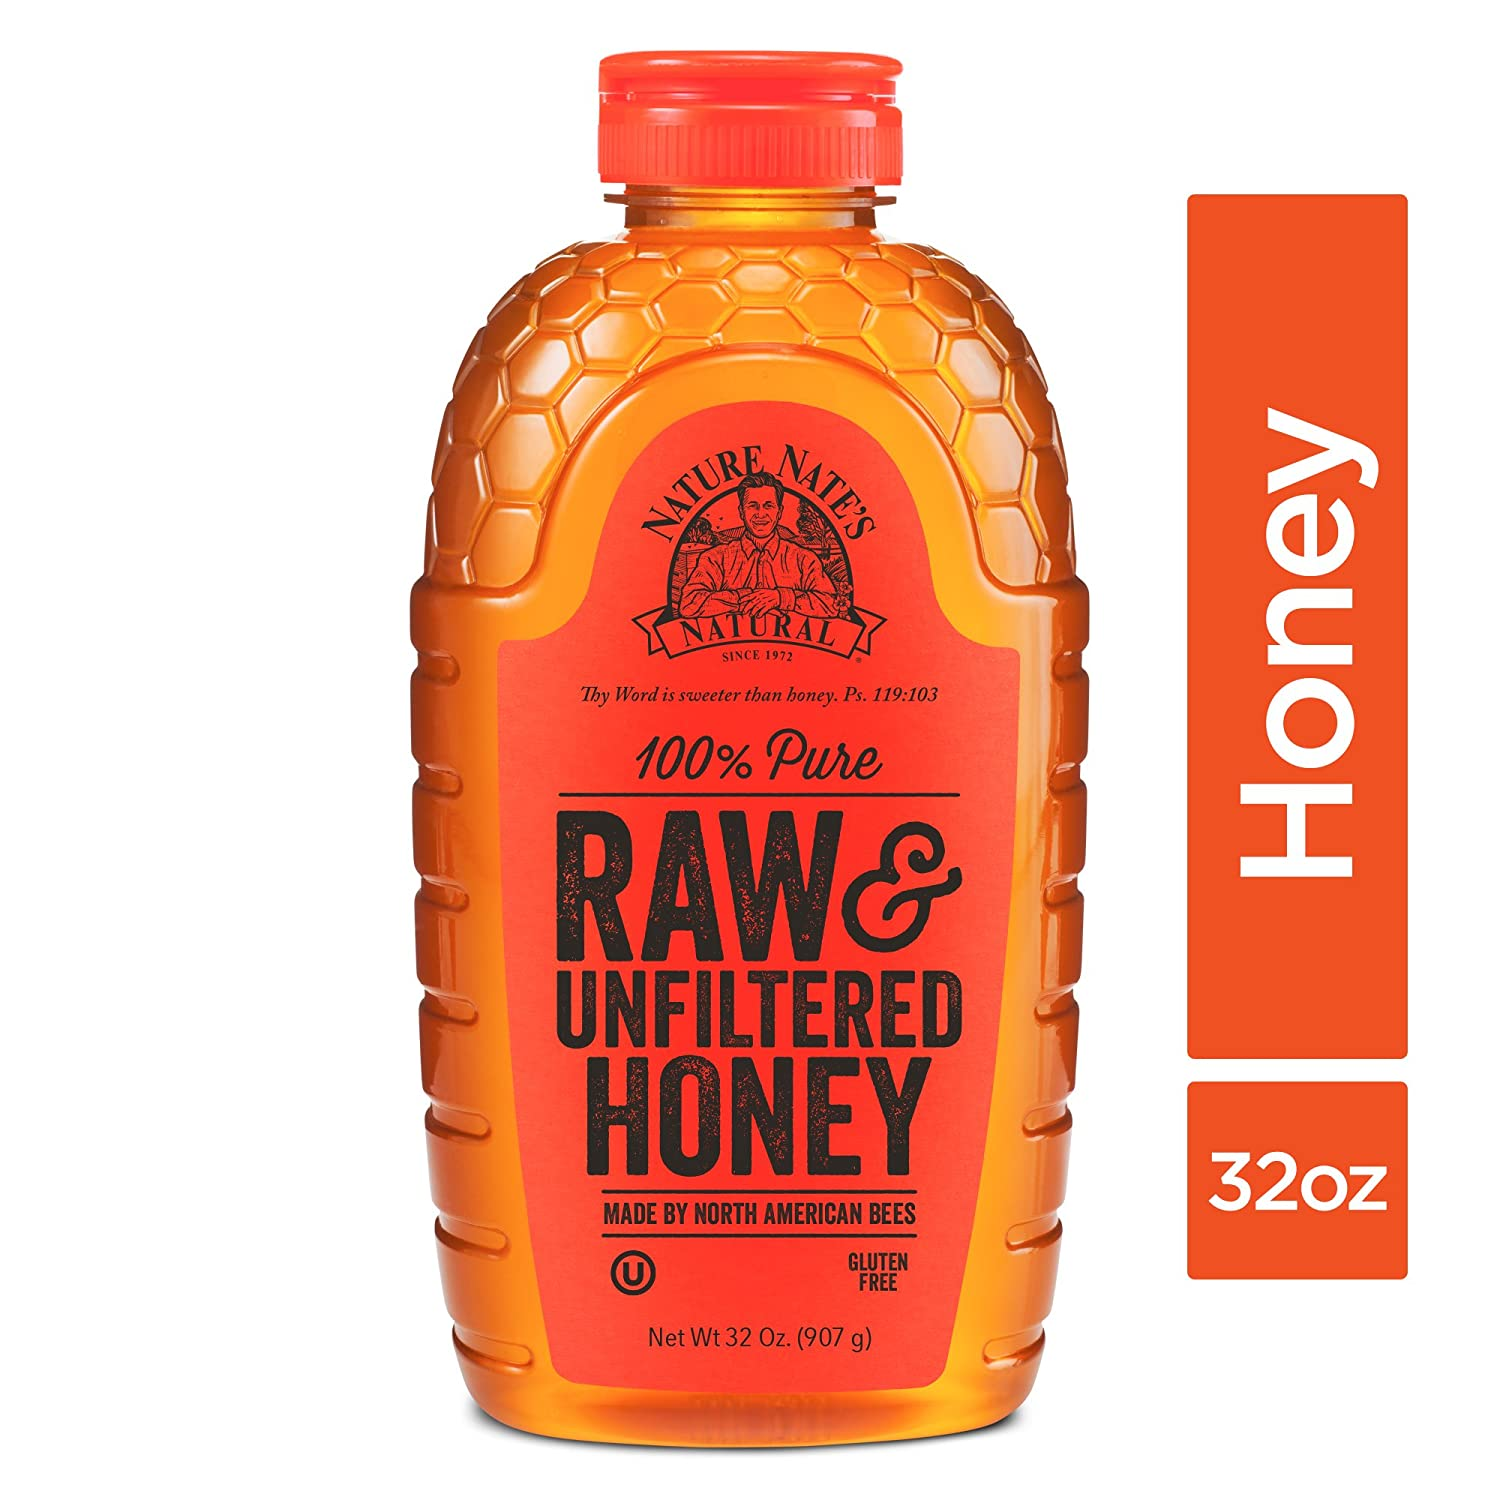 Amazon.com : Nature Nate's 100% Pure, Raw & Unfiltered Honey; 32oz ...